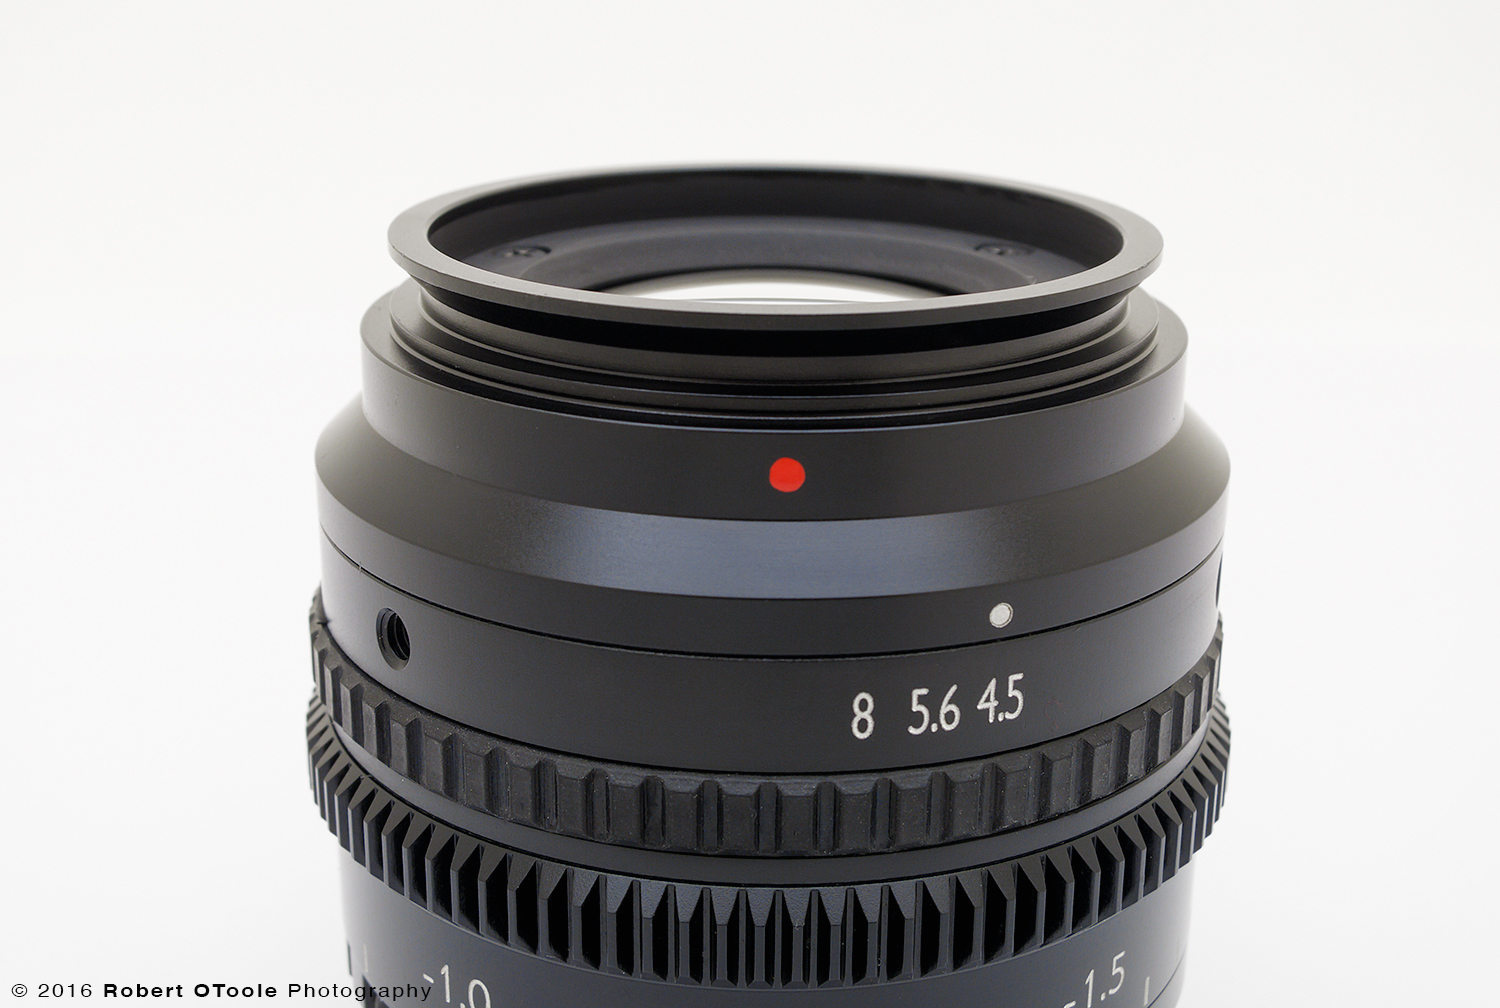 This red dot indicates the position that the lens should be in to perform at its best and the V mount makes it easy to position the lens to that orientation.